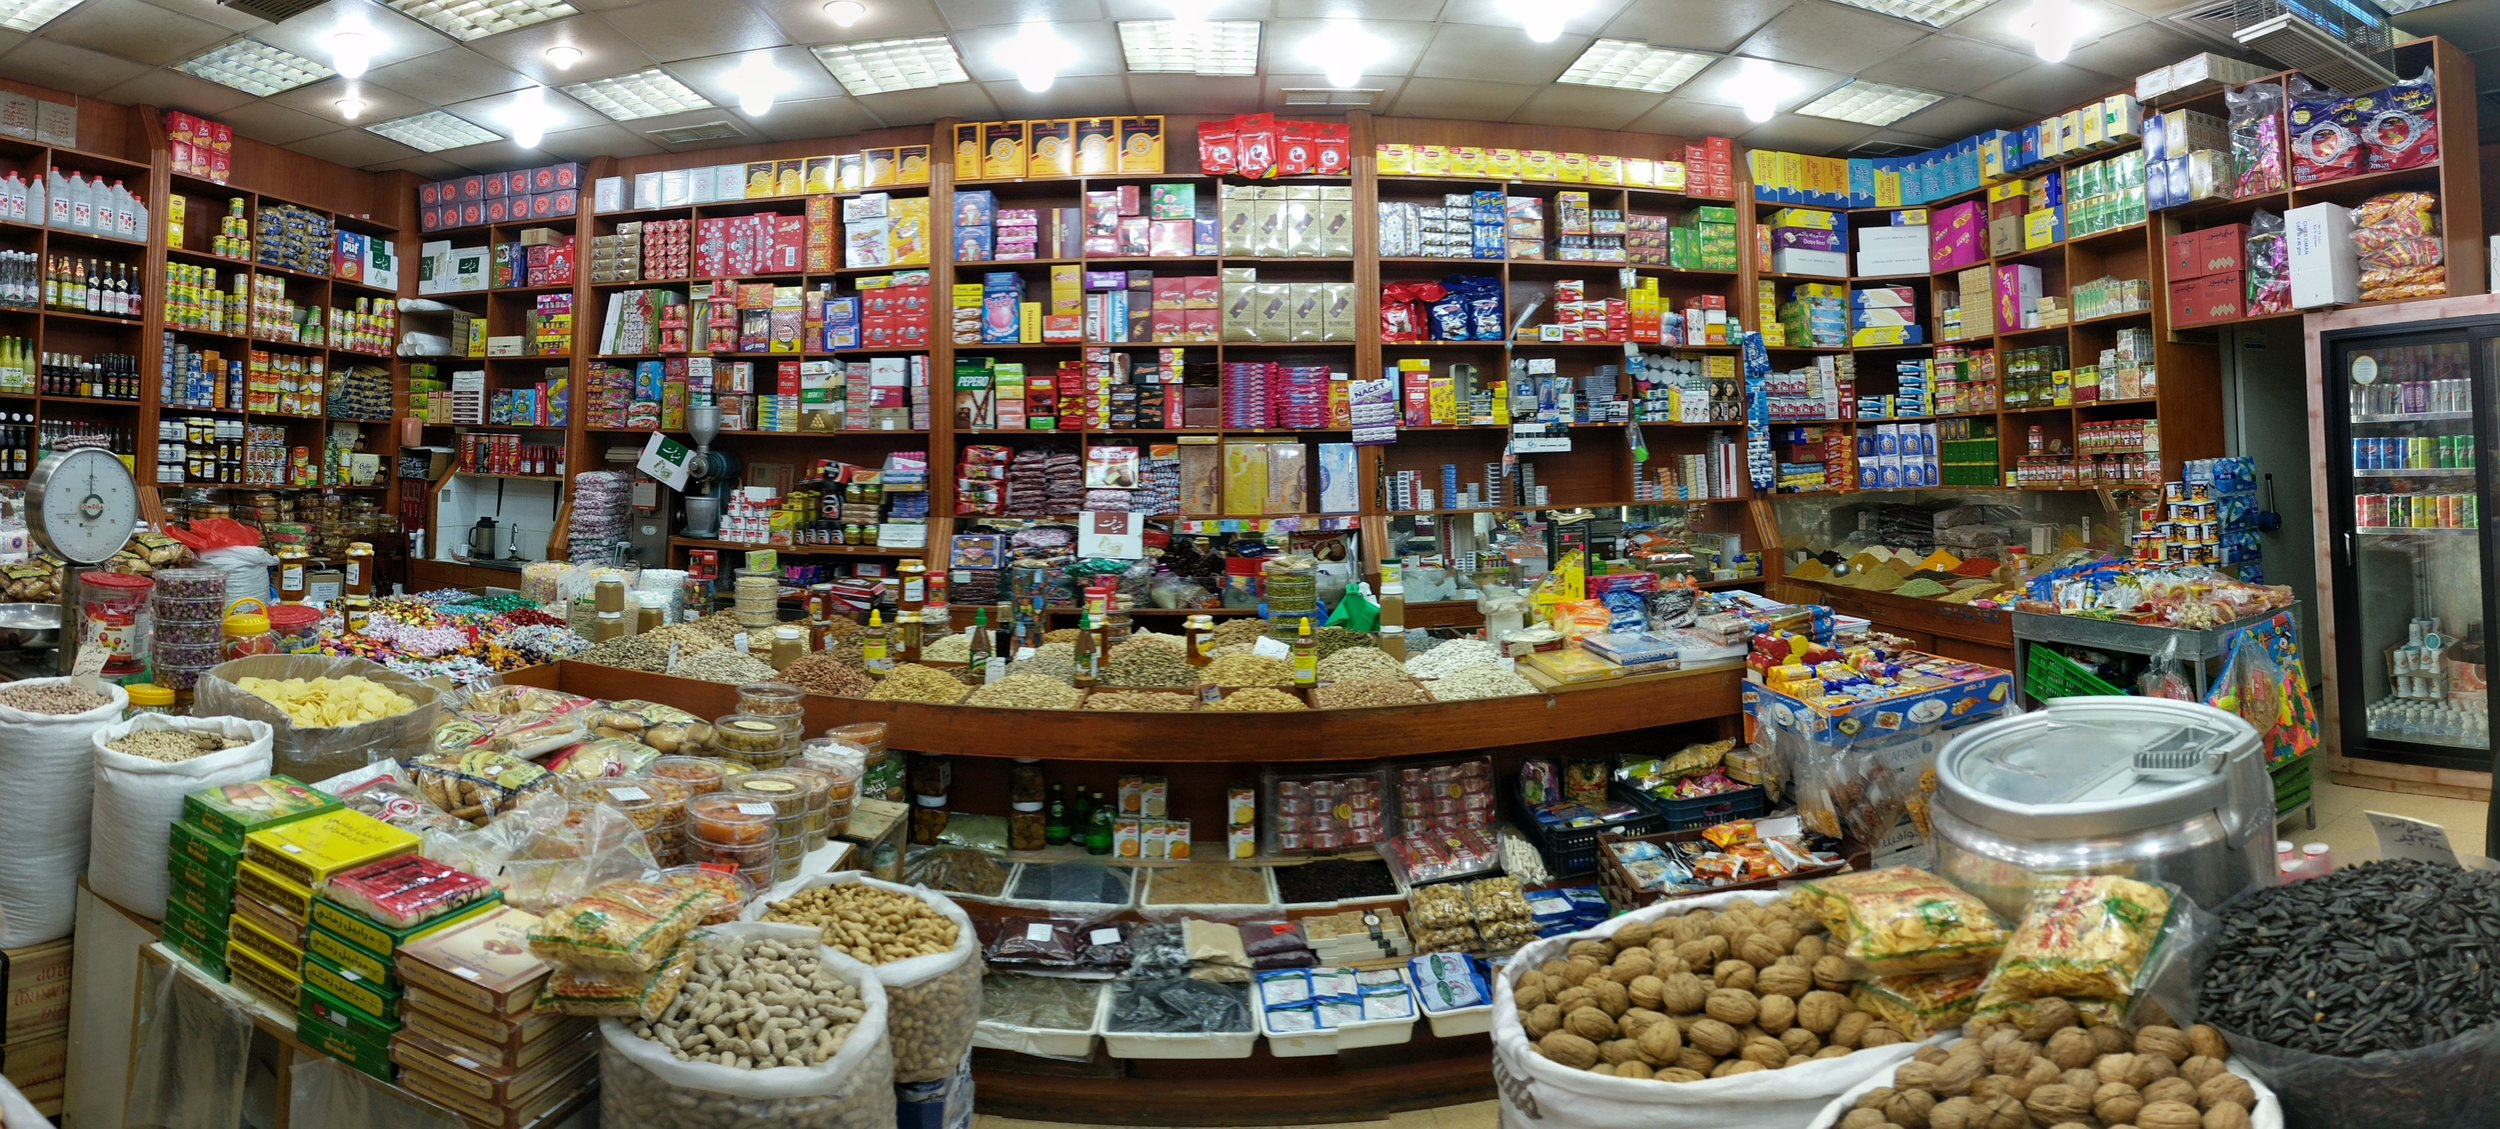 A typical souk stall selling nuts, dates, and packaged goods